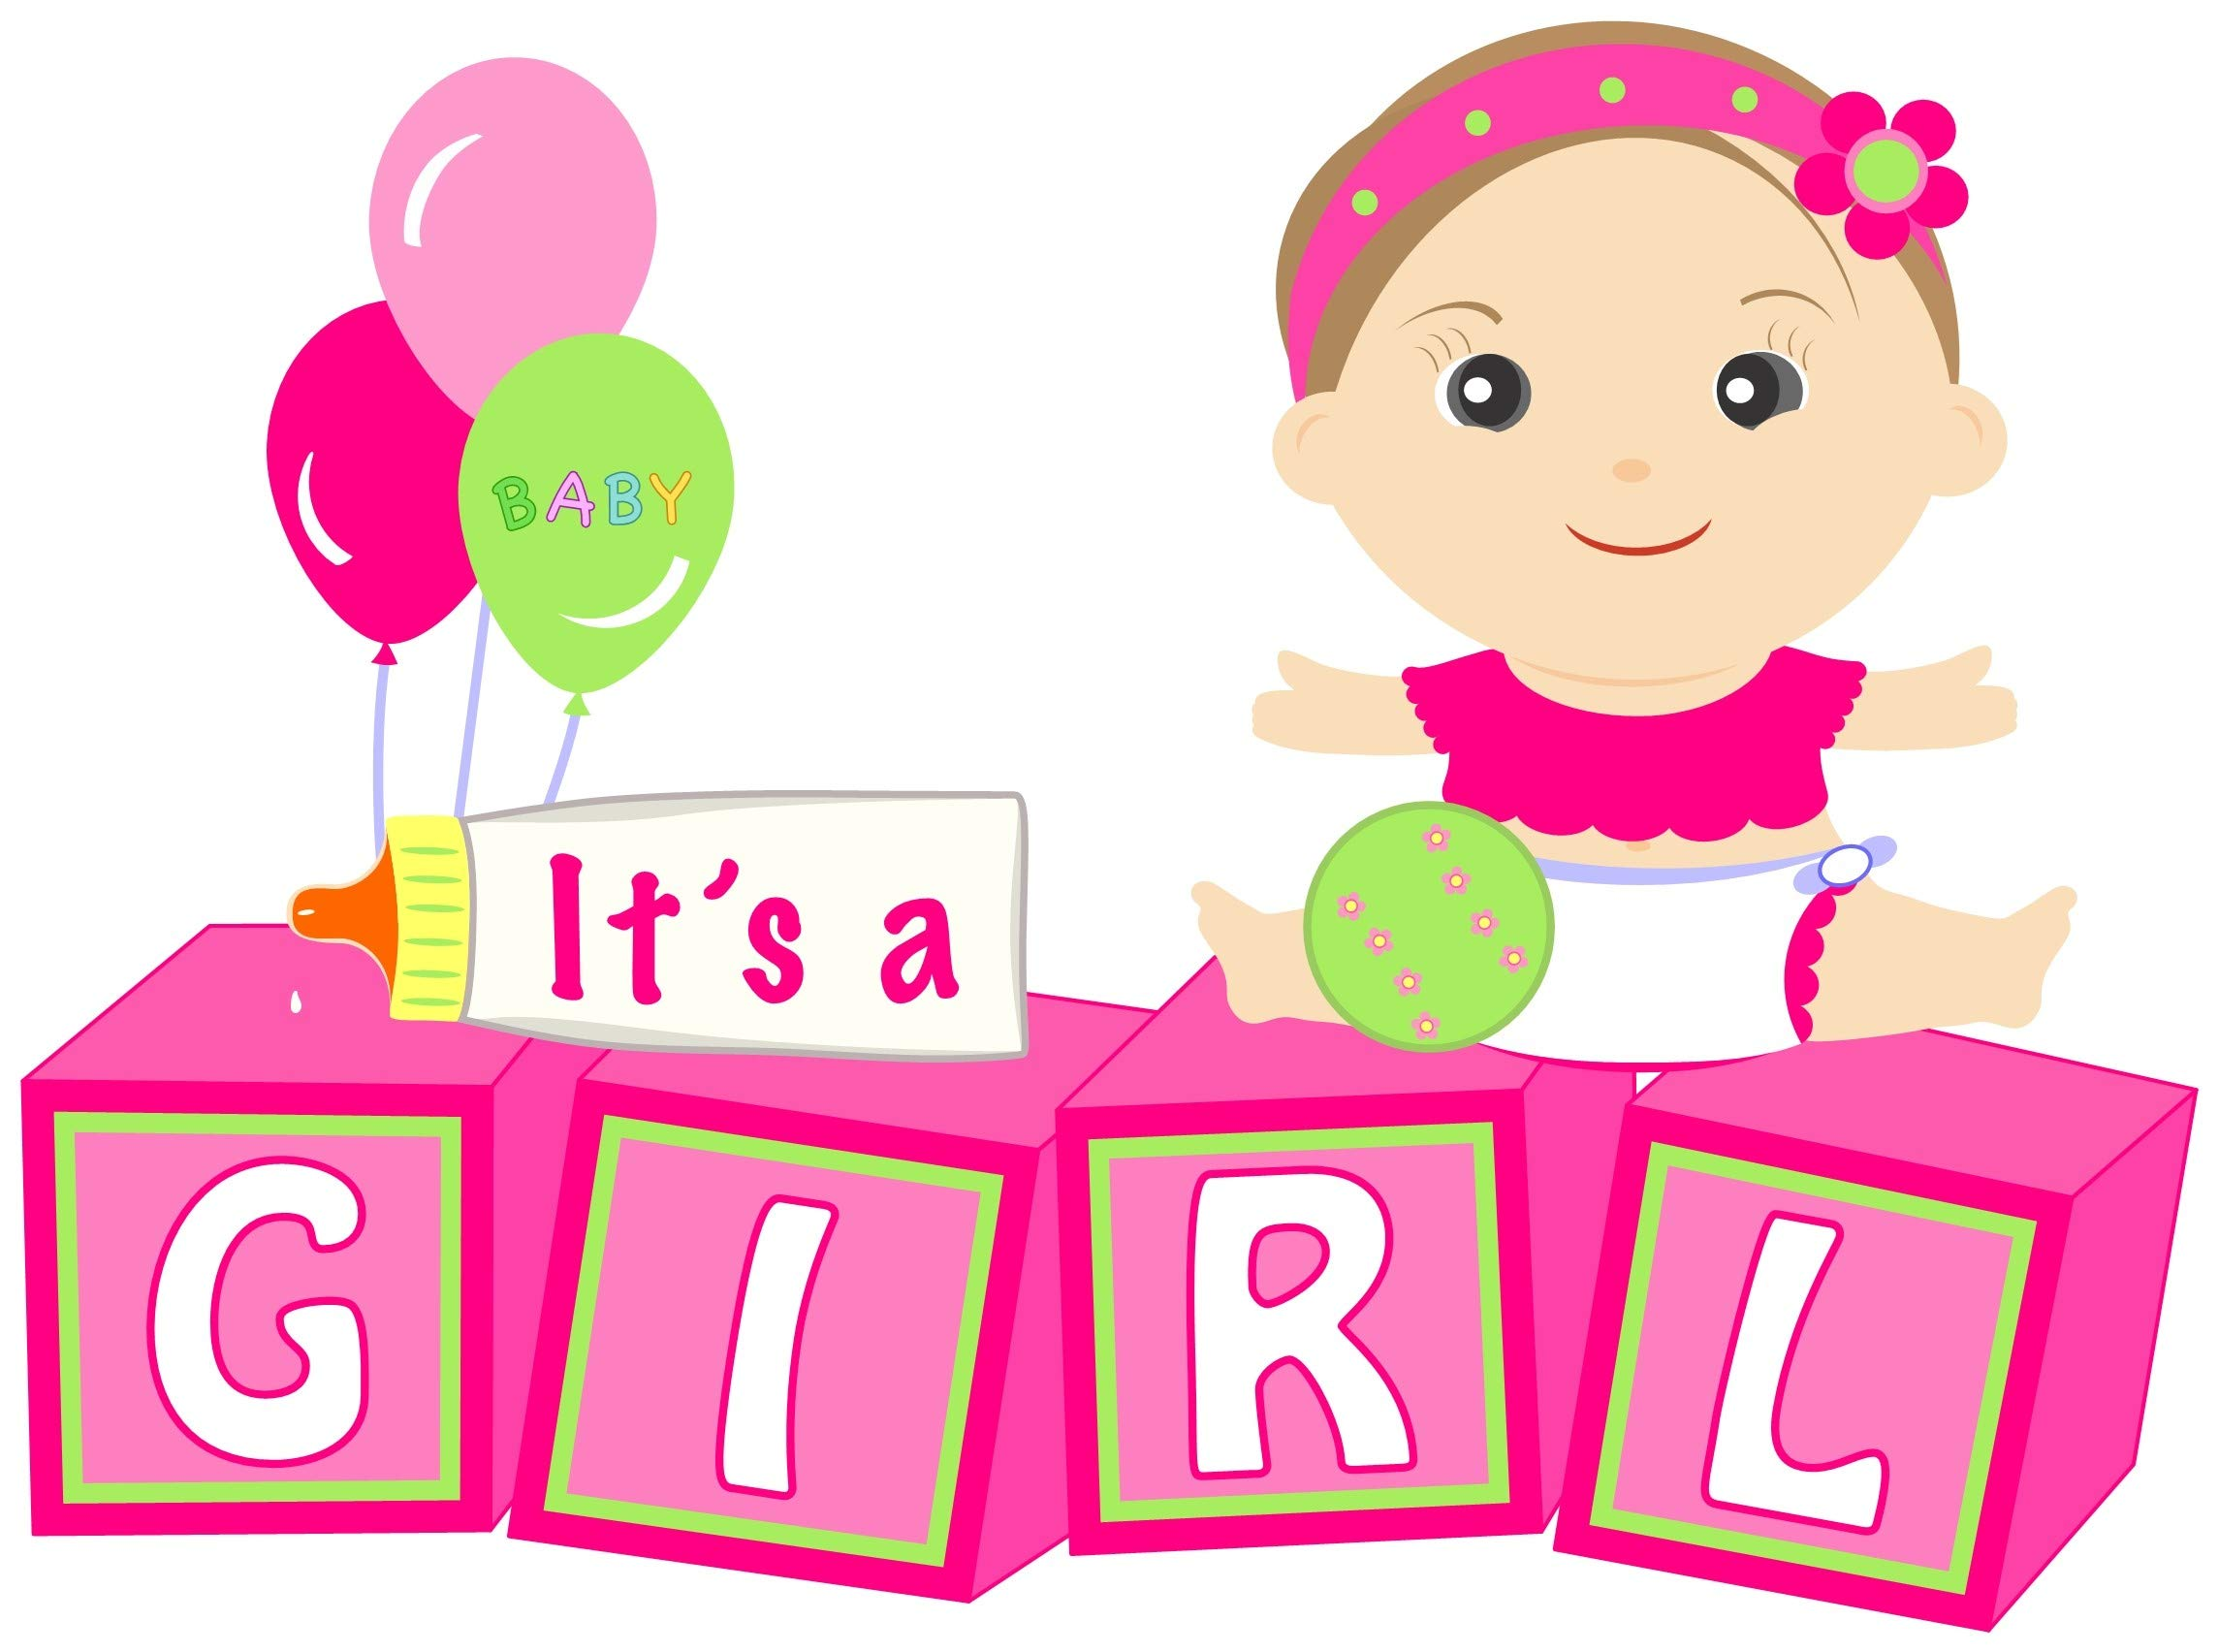 Welcome New Baby''It's a Girl'' Yard Announcement - Pink Outdoor Baby Shower Party Sign - Festive Newborn Lawn Stork Birth Decoration - Pregnancy Gift (Pink) by Cute News (Image #1)